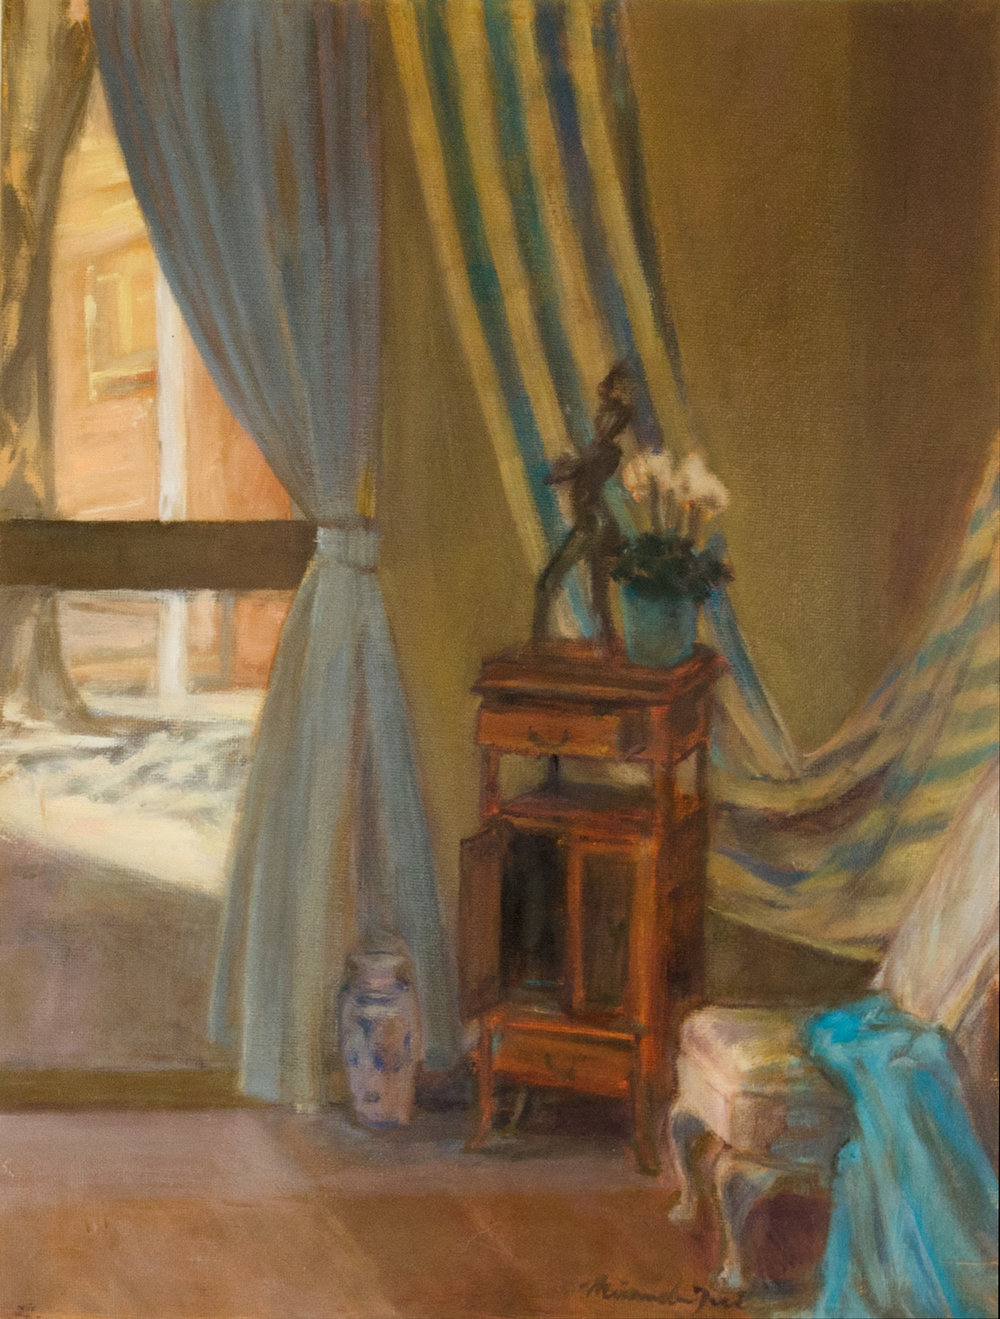 Interior with Statue  Oil on canvas board  16 x 12 inch  Framed size: 25.5 x 21 x 1 inch